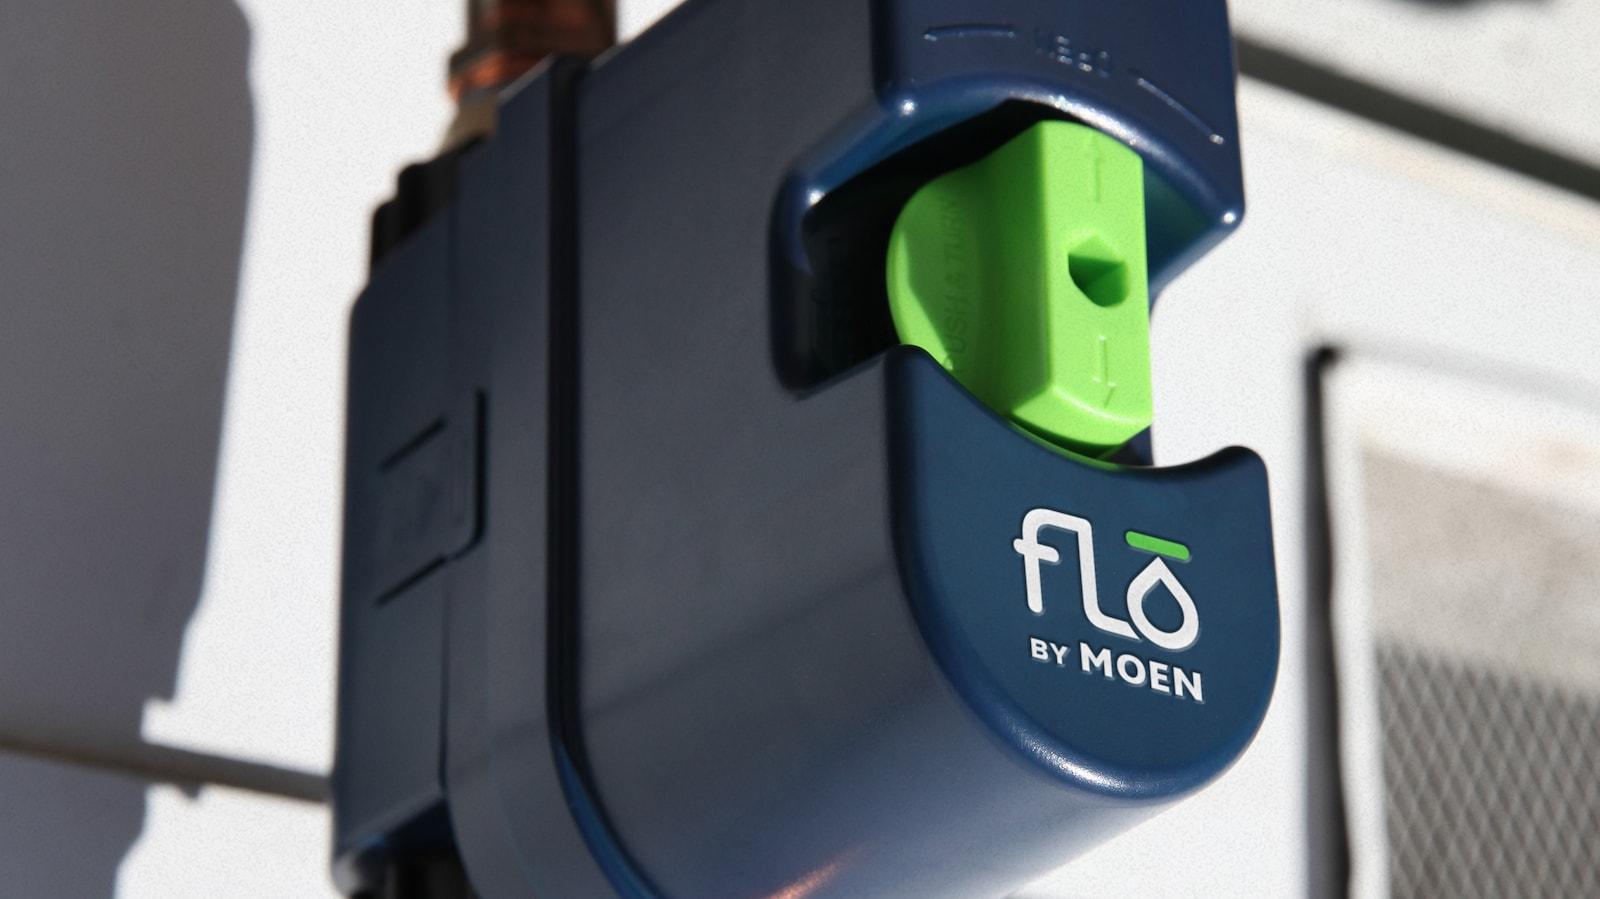 Flo By Moen Smart Water Shutoff protects your home from water damage and leaks